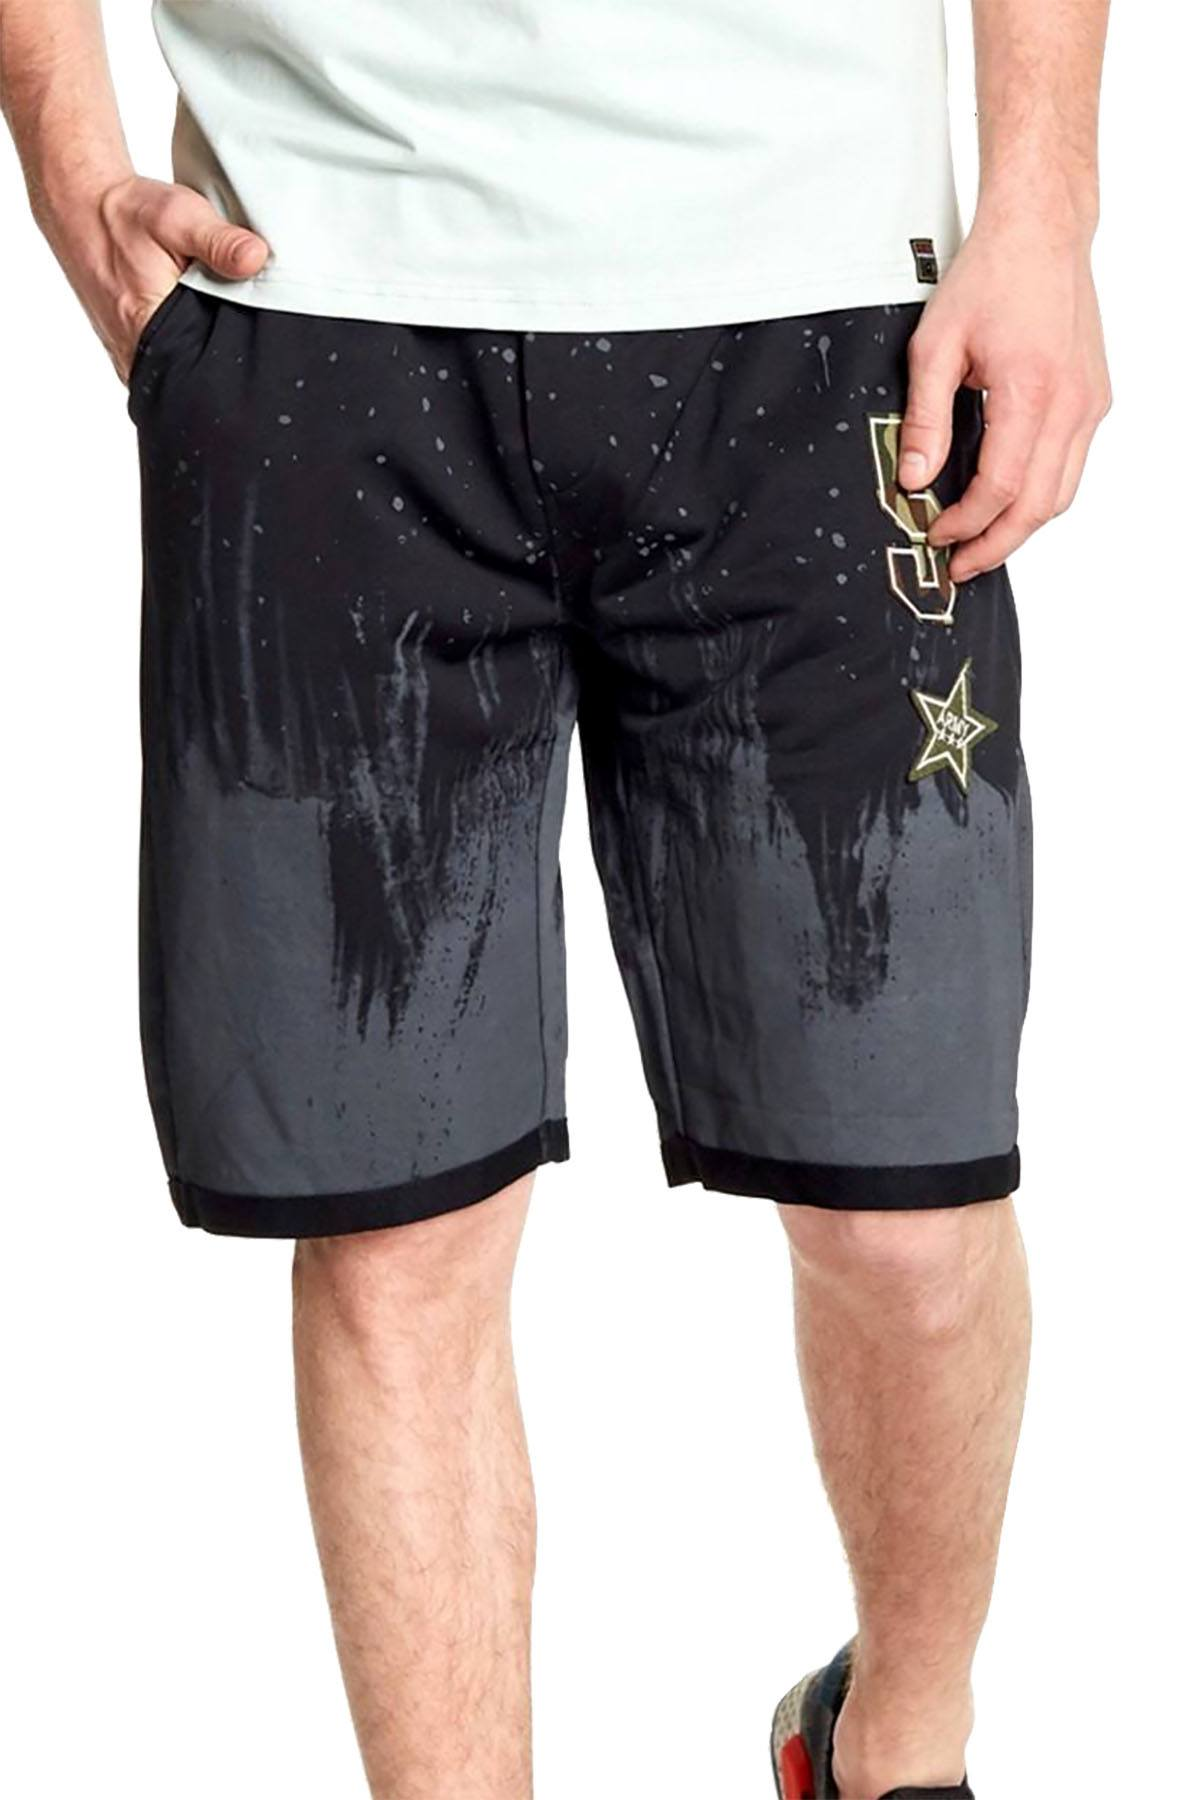 Tailored Recreation Premium Black Splatter-Paint Patch Short